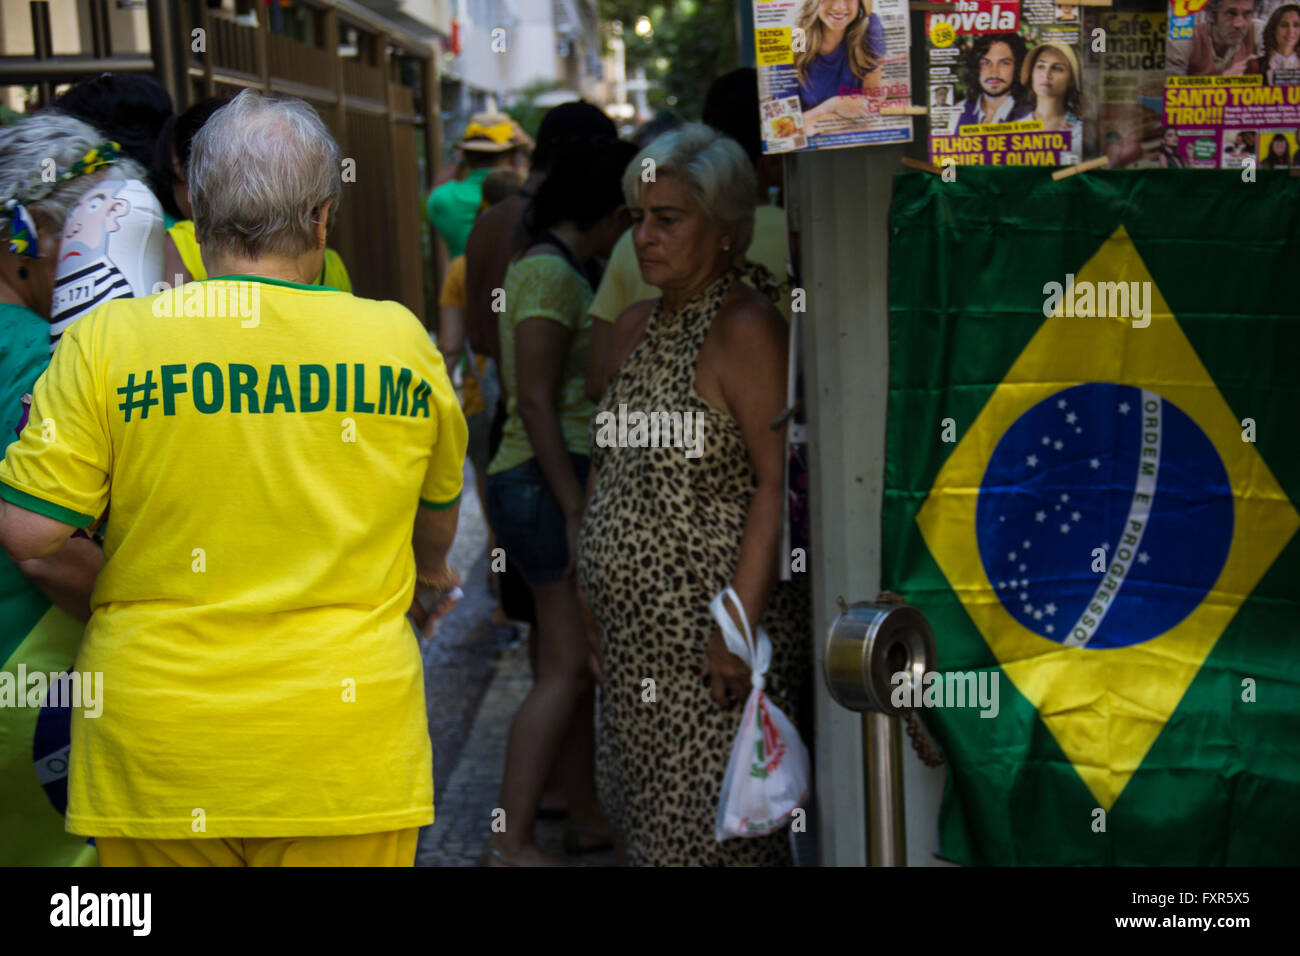 Rio de Janeiro, Brazil, 17 April 2016: Thousands of demonstrators protesting in favor of impeachment of Rousseff - Stock Image